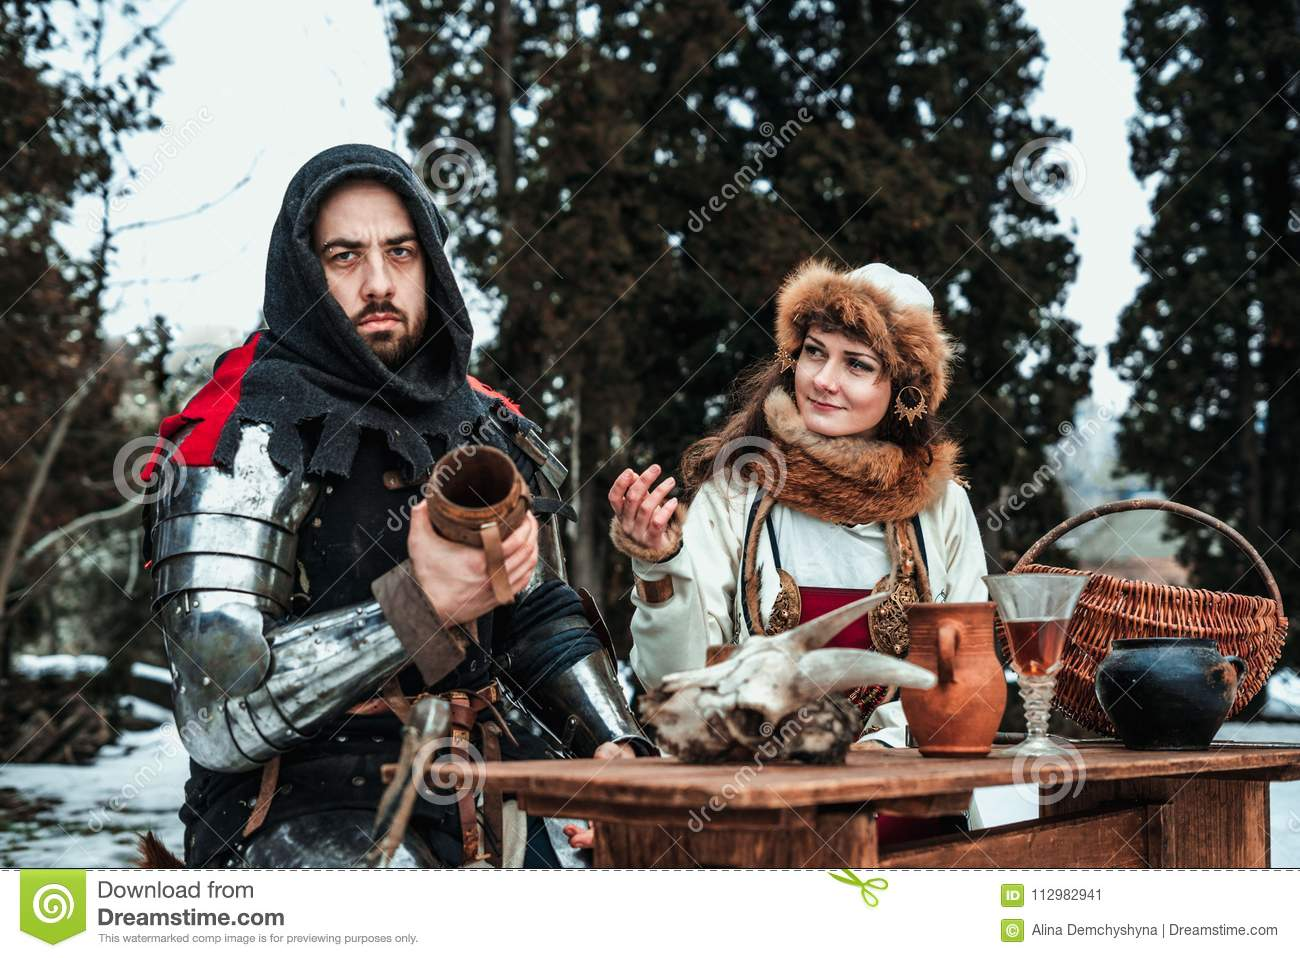 A man and a woman in historical costumes are sitting at a table